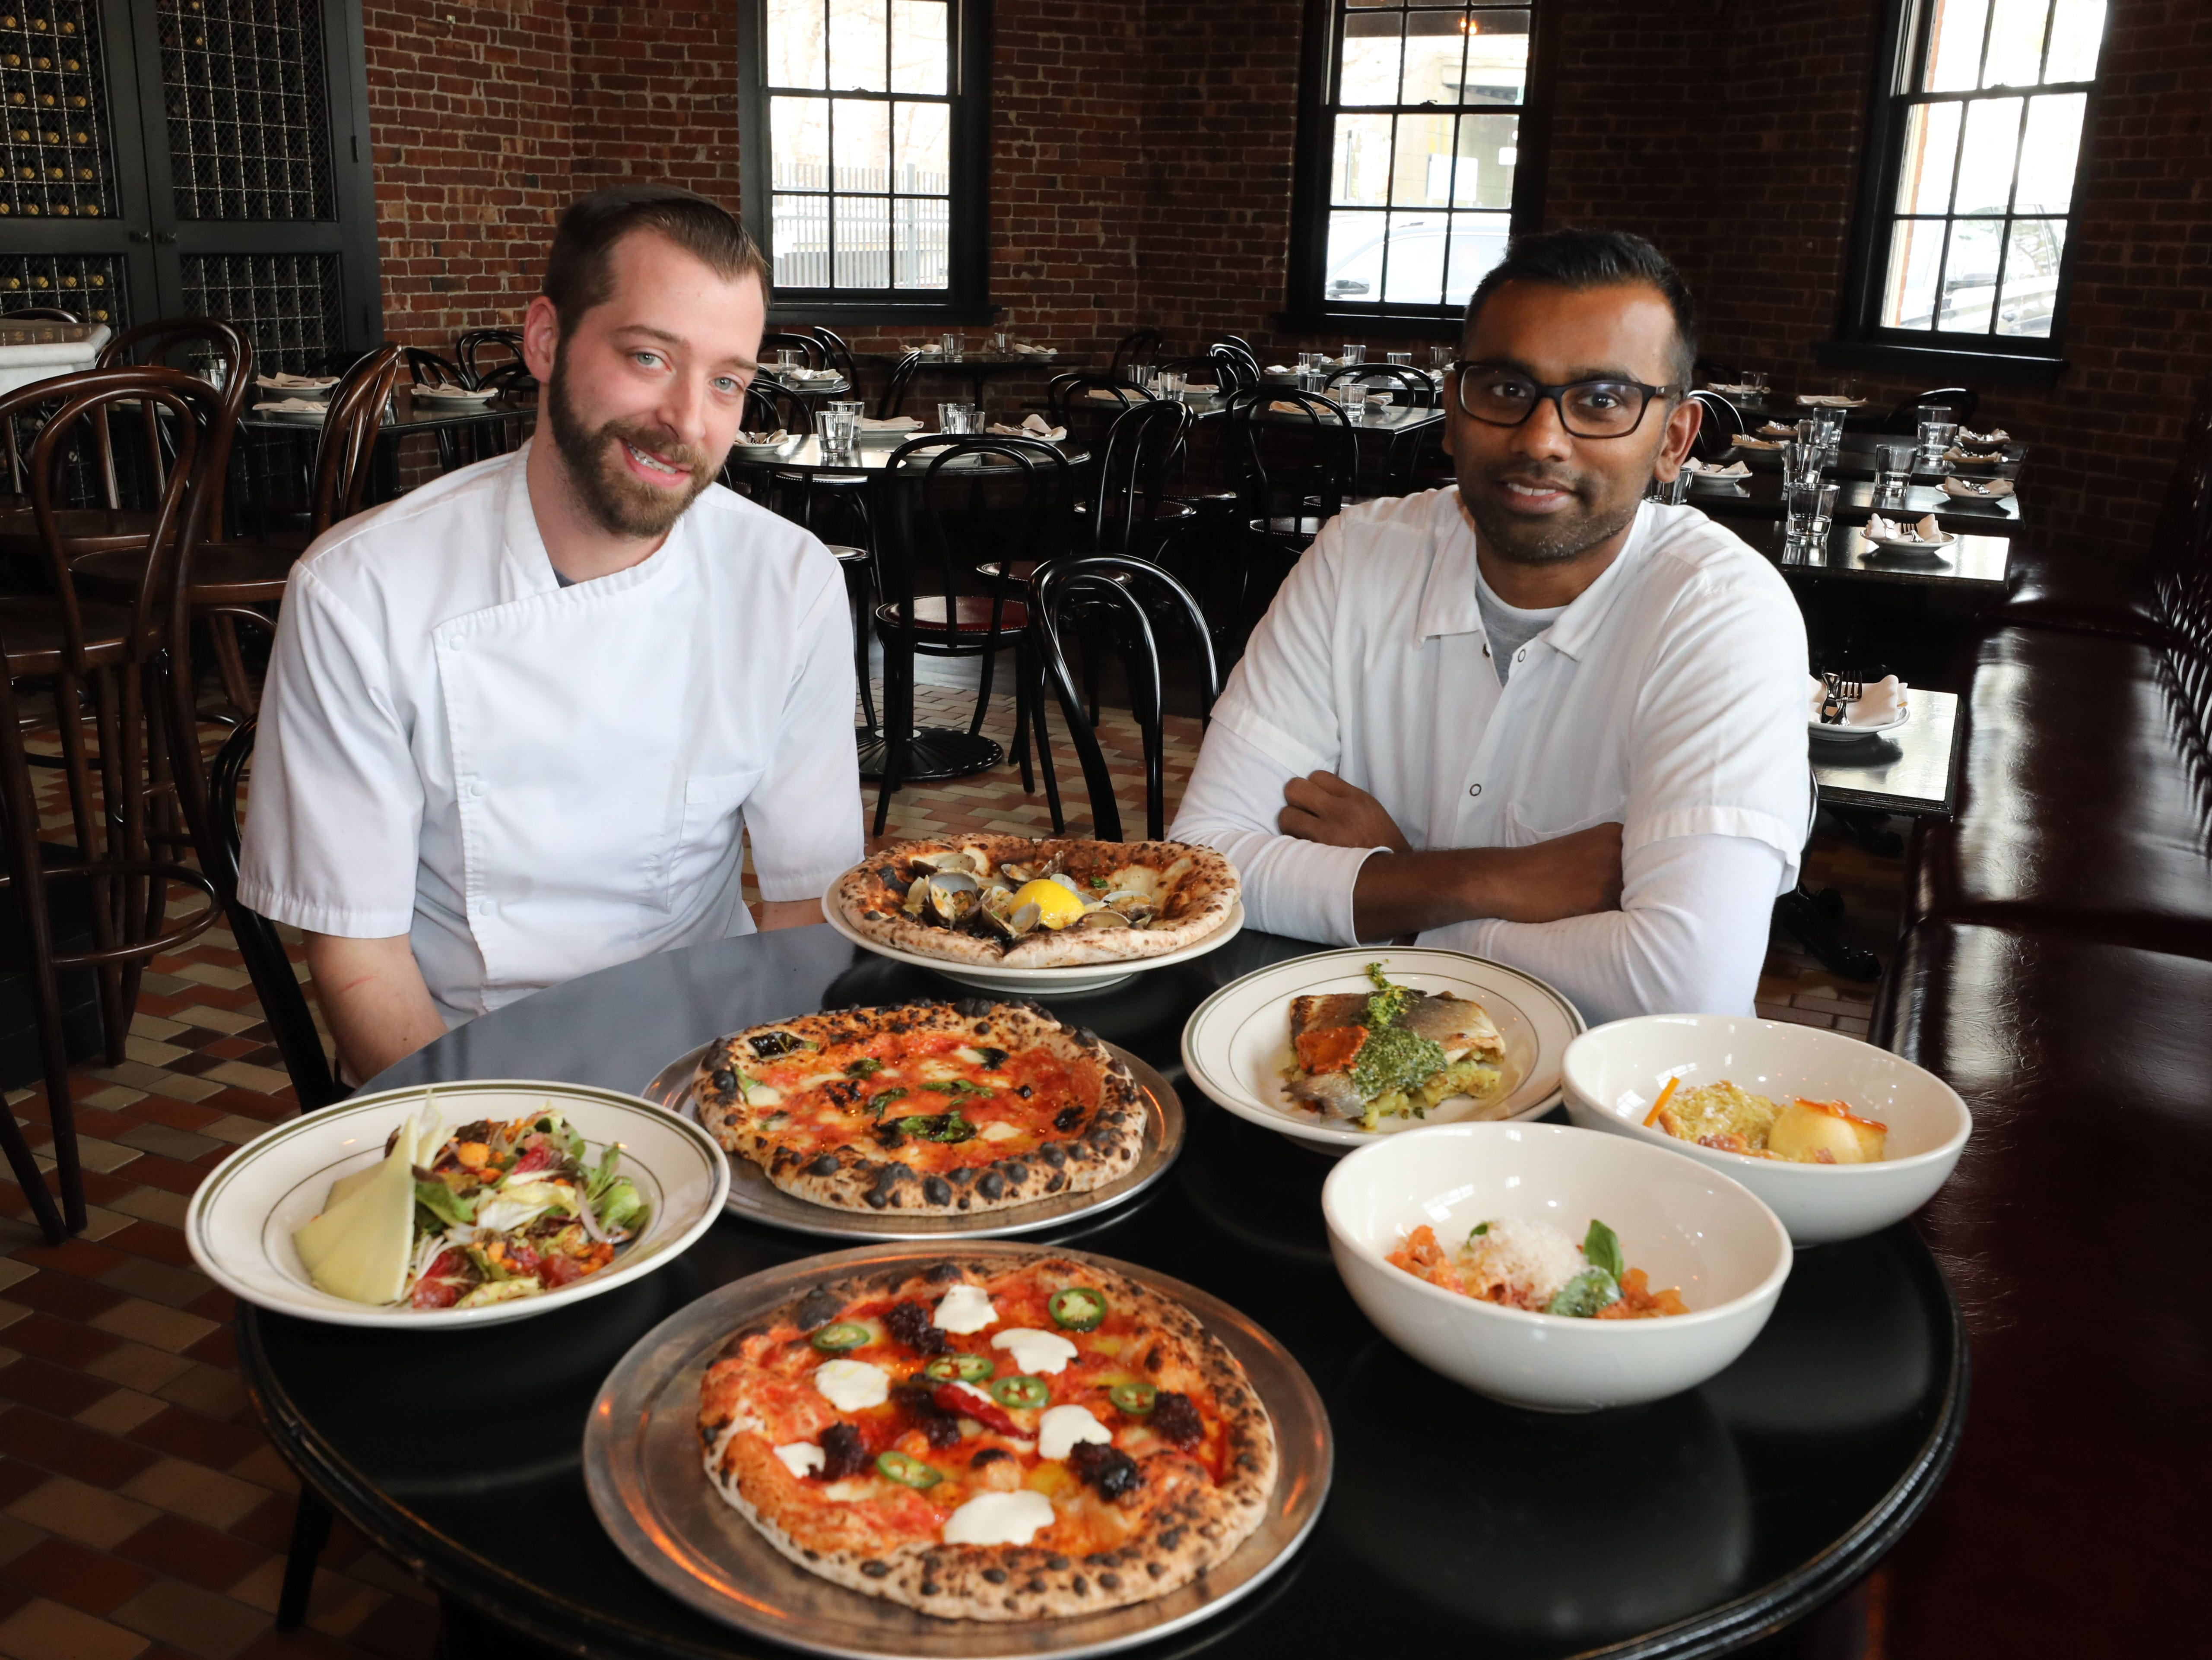 Executive Chef William Eschner and Executive Chef Mogan Anthony from Village Social Restaurant Group are pictured with some of their food at Locali Pizza Bar and Kitchen in the Mount Kisco, March 8, 2019.